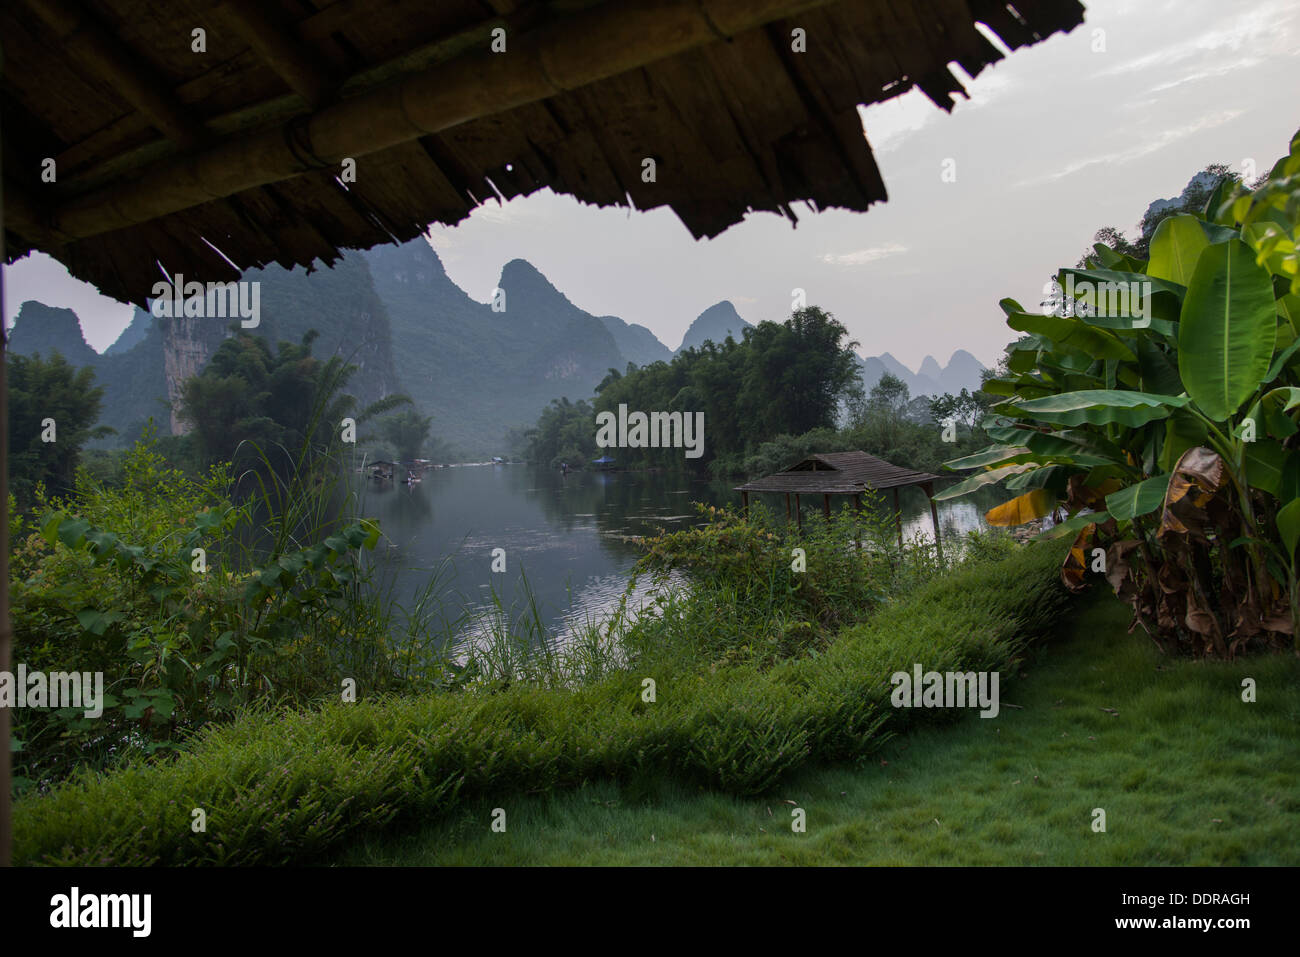 View of a river with mountains in the background, Yangshuo Mountain Retreat, Yangshuo, Guilin, Guangxi Province, China - Stock Image